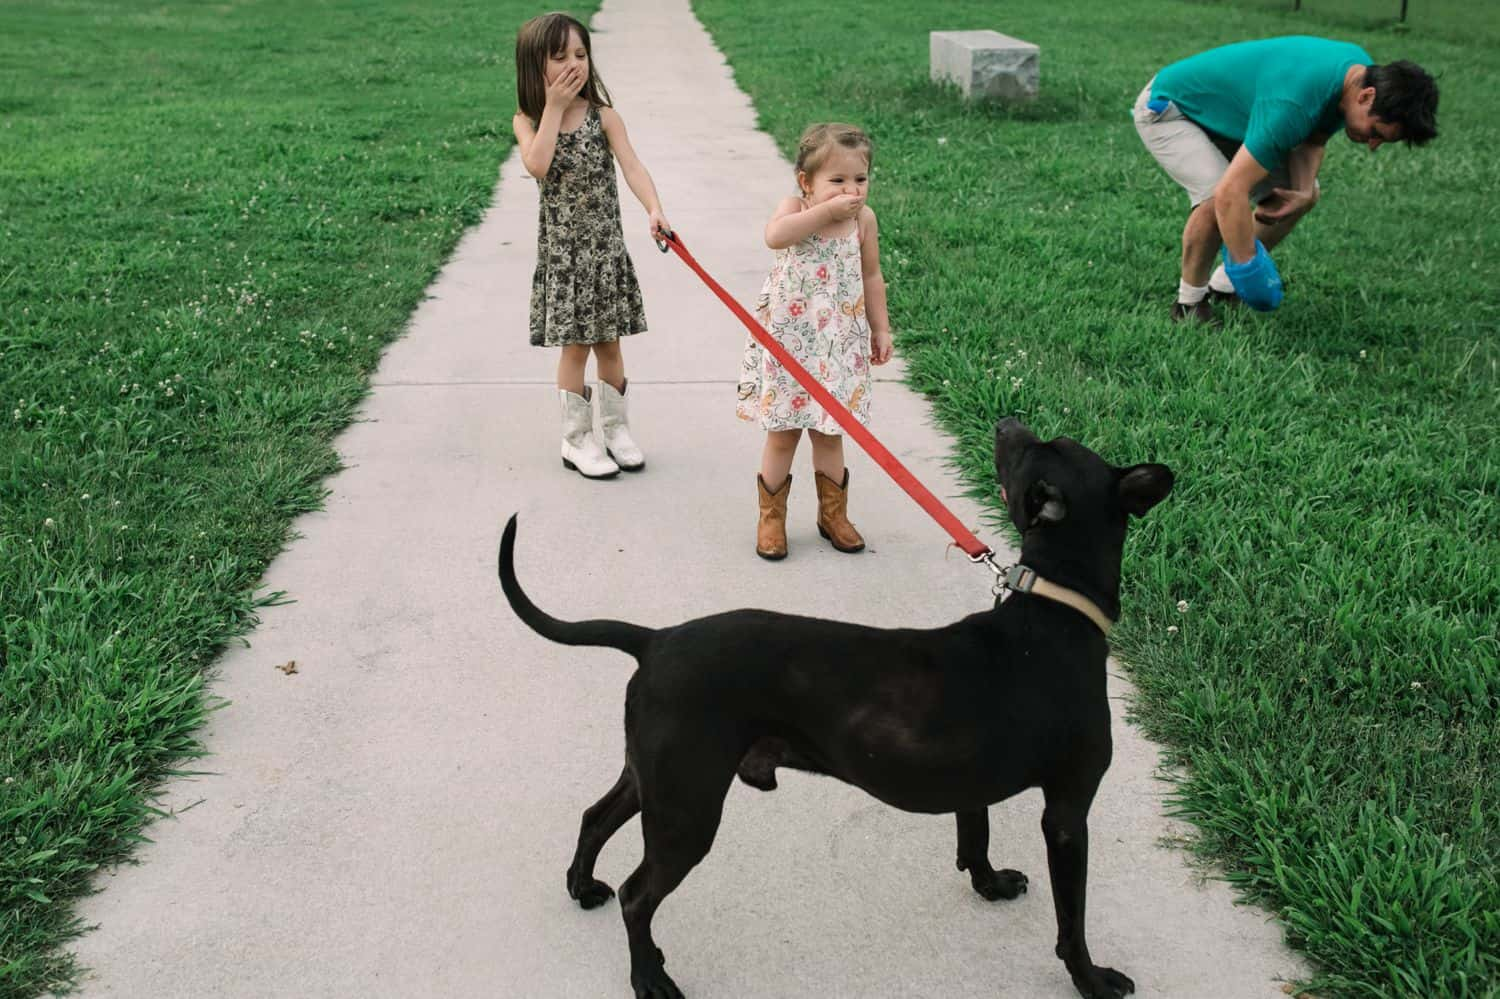 Fearless Family Photos All Have These 4 Ingredients: Lifestyle Photography - Walking the Dog Involves Picking Up Poo